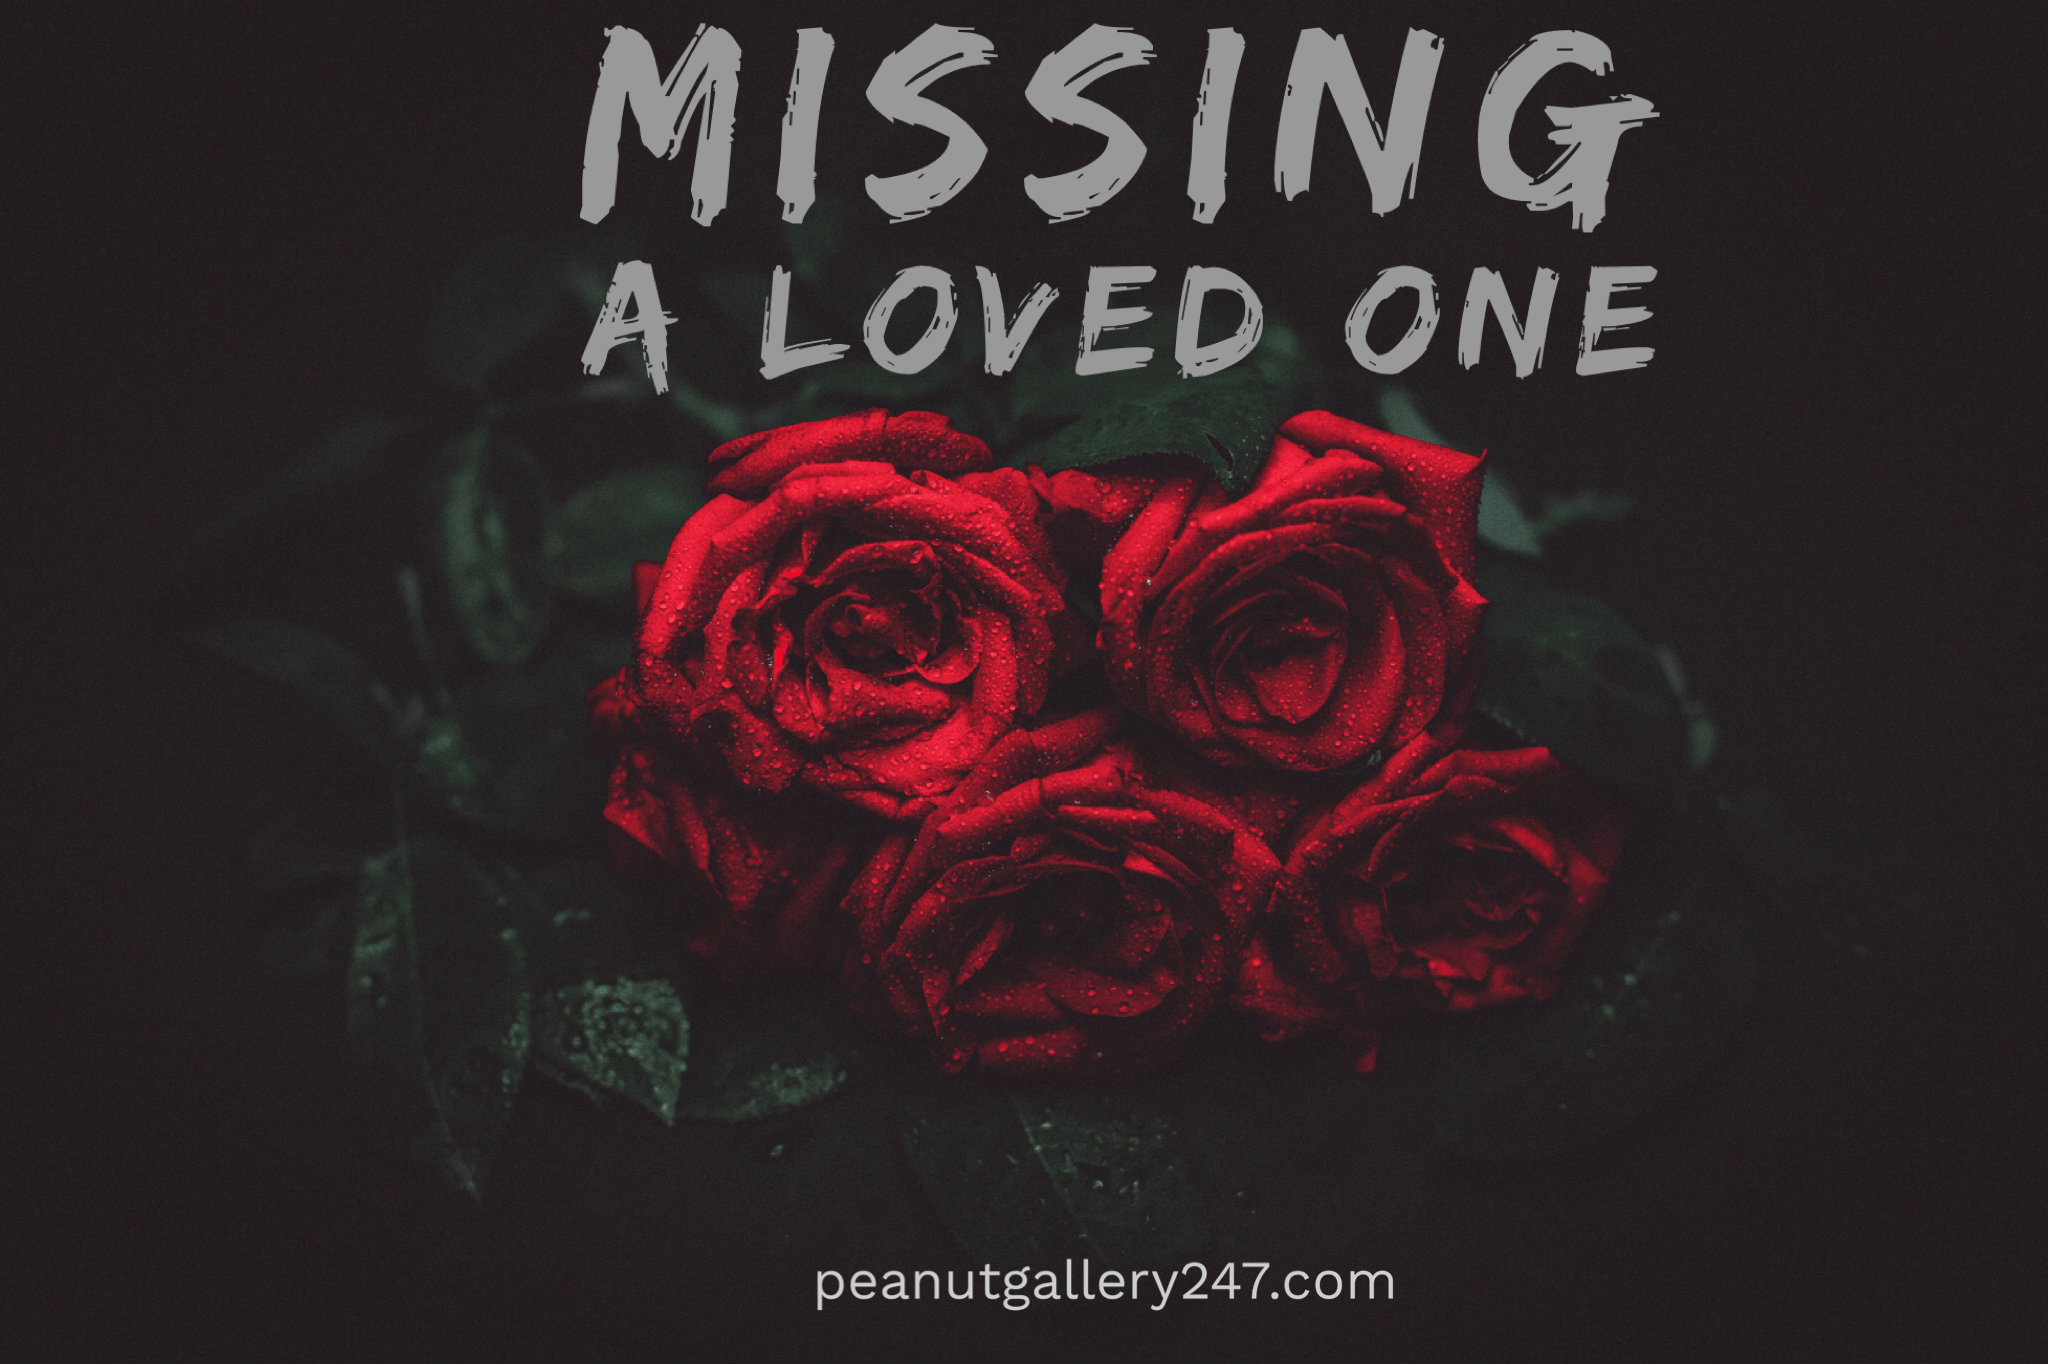 Missing a loved one